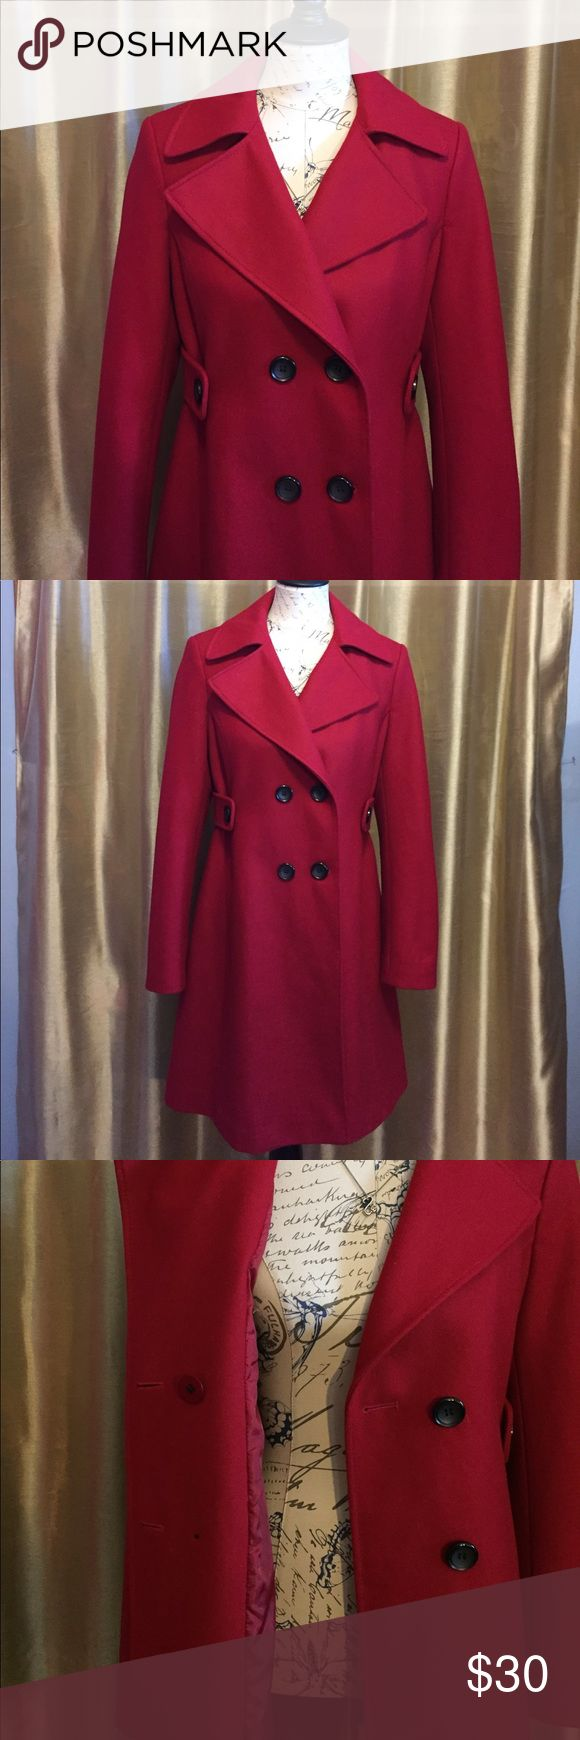 Adorable Red Pea Coat (NWOT) A Victoria's Secret staple, this coat is classy, sassy, and a definite head turner!  It features a slight curve to accentuate the female physique, and double breasted buttons. This coat has not been worn but there is opening in the stitching under the armpit that is not pulling apart (pictured). A few stitches and no one would be the wiser . The split in the tail still has it's original stitching. Unfortunately, it's slightly to small for me so I have to let it…